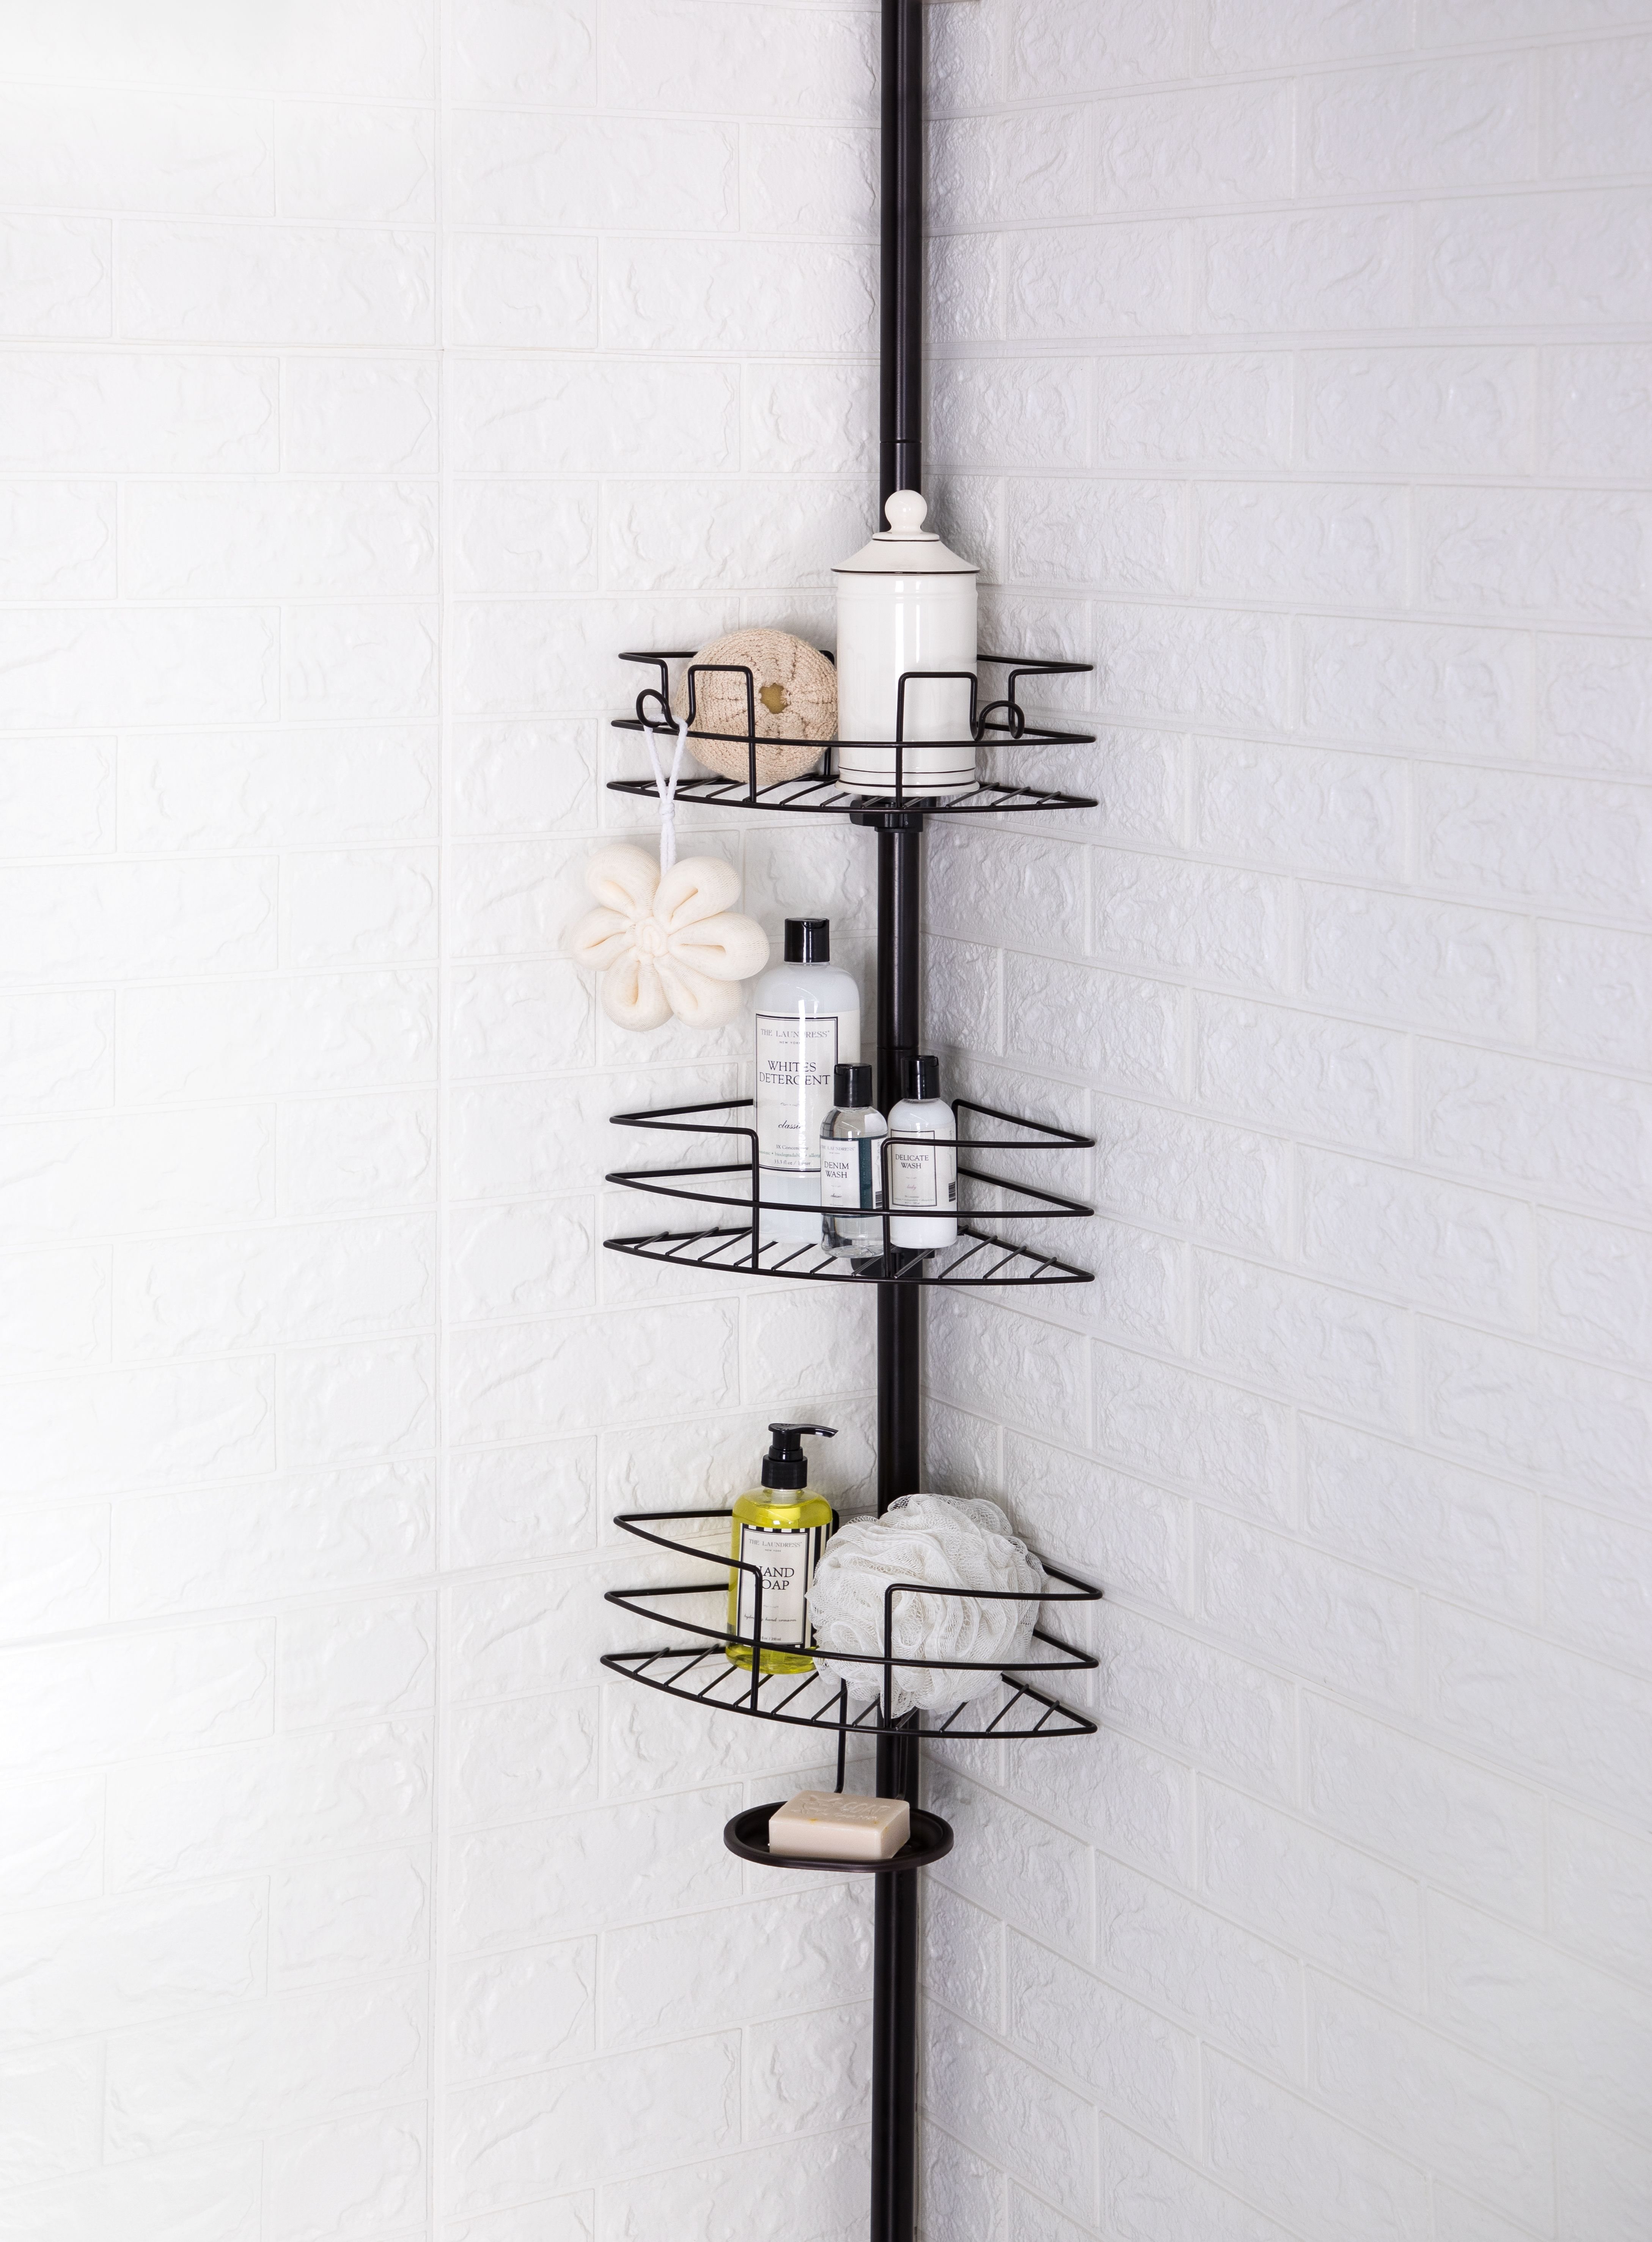 Home Improvement In 2020 Corner Shower Caddy Wire Shelving